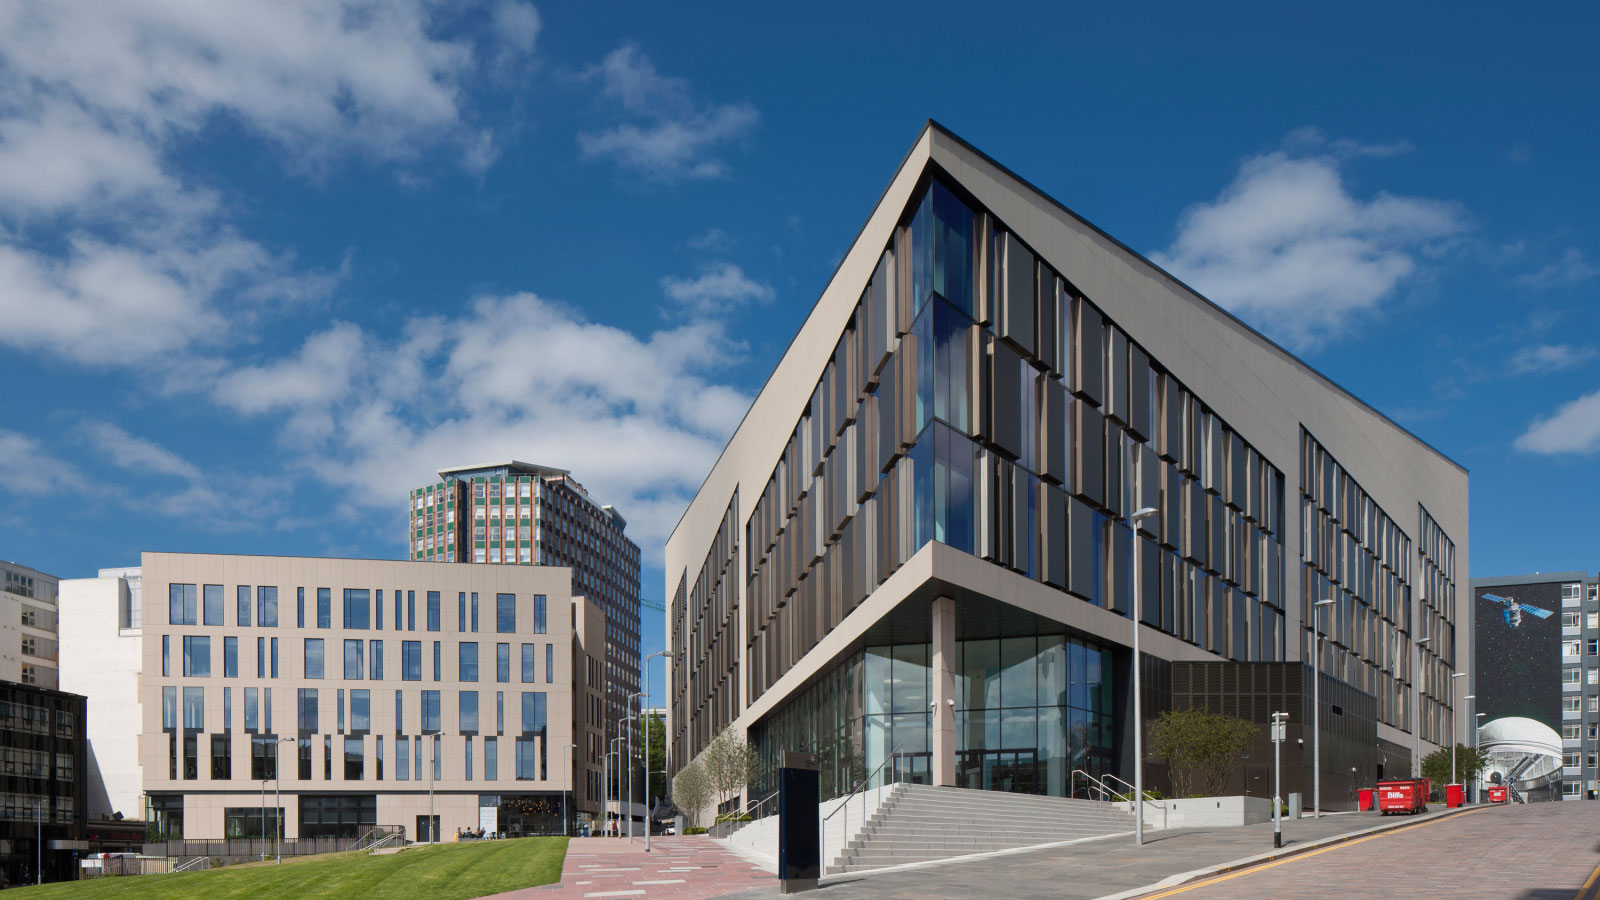 Миниатюра University of Strathclyde (Университет Стратклайда) 1